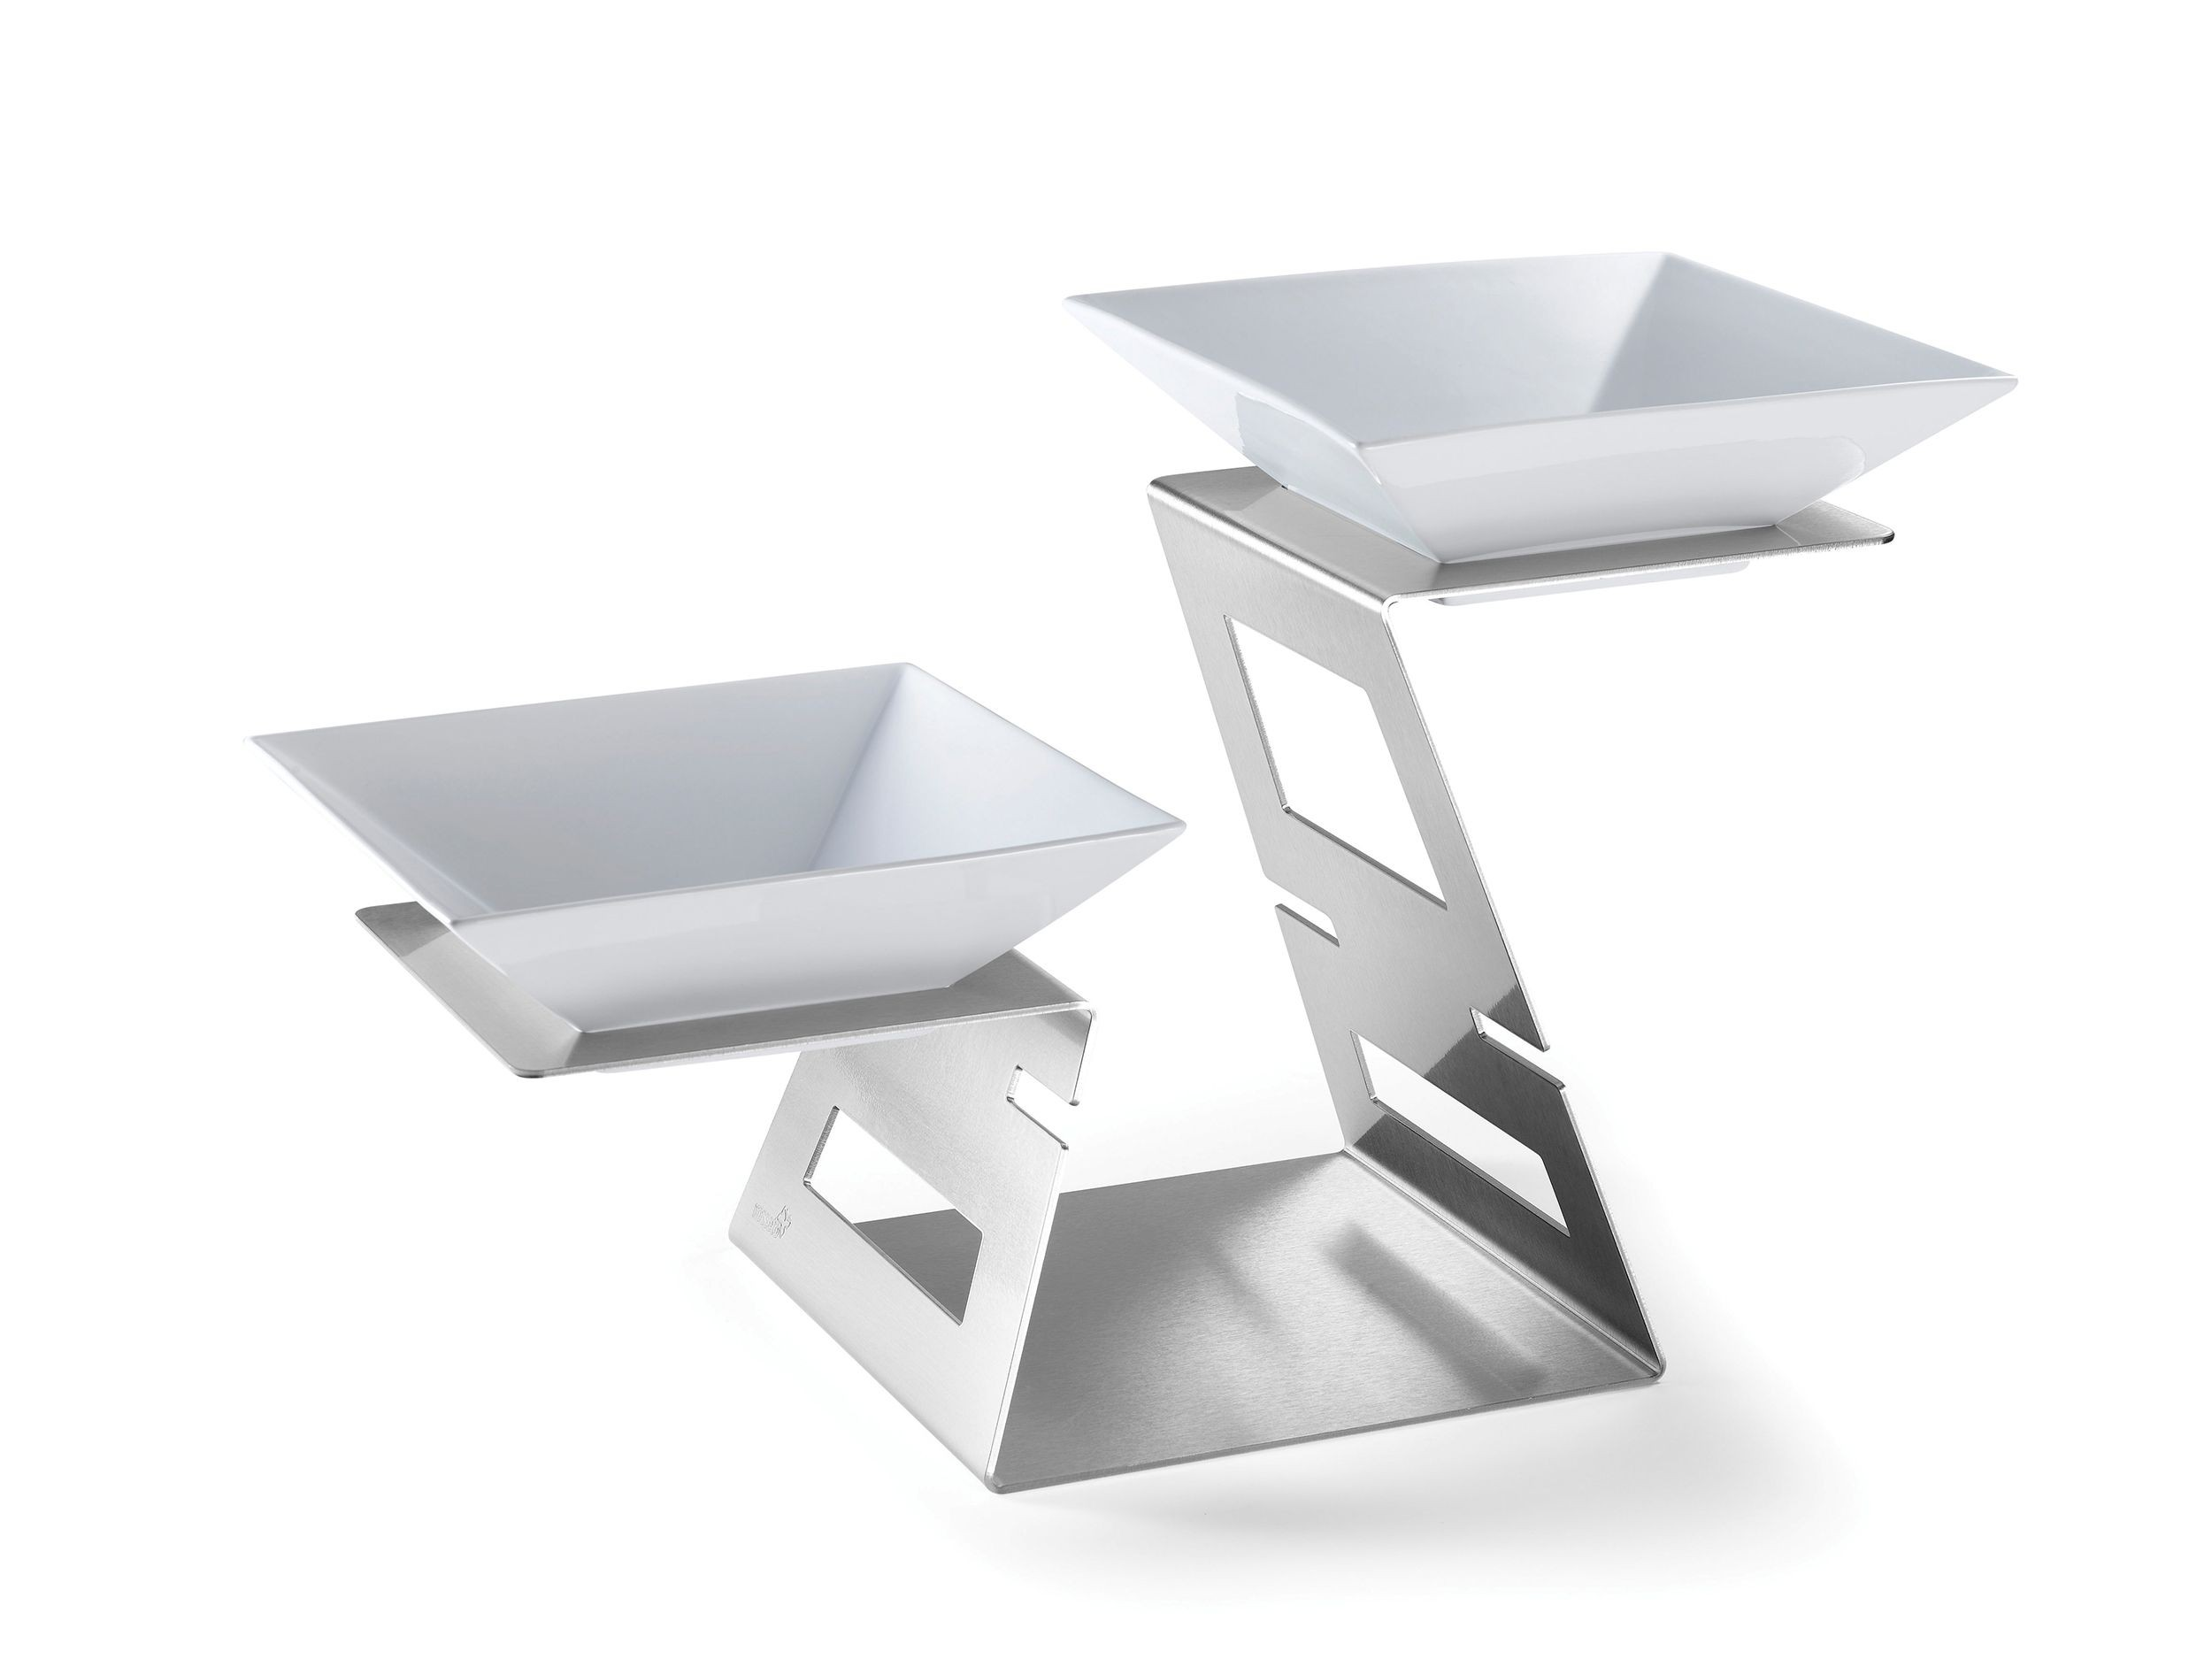 """Rosseto SM221 Swan Multi-Level Riser Stainless Steel Brushed Finish Includes: 2 Porcelain Bowls- 23.4"""" x 10.75"""" x 14.3""""H"""